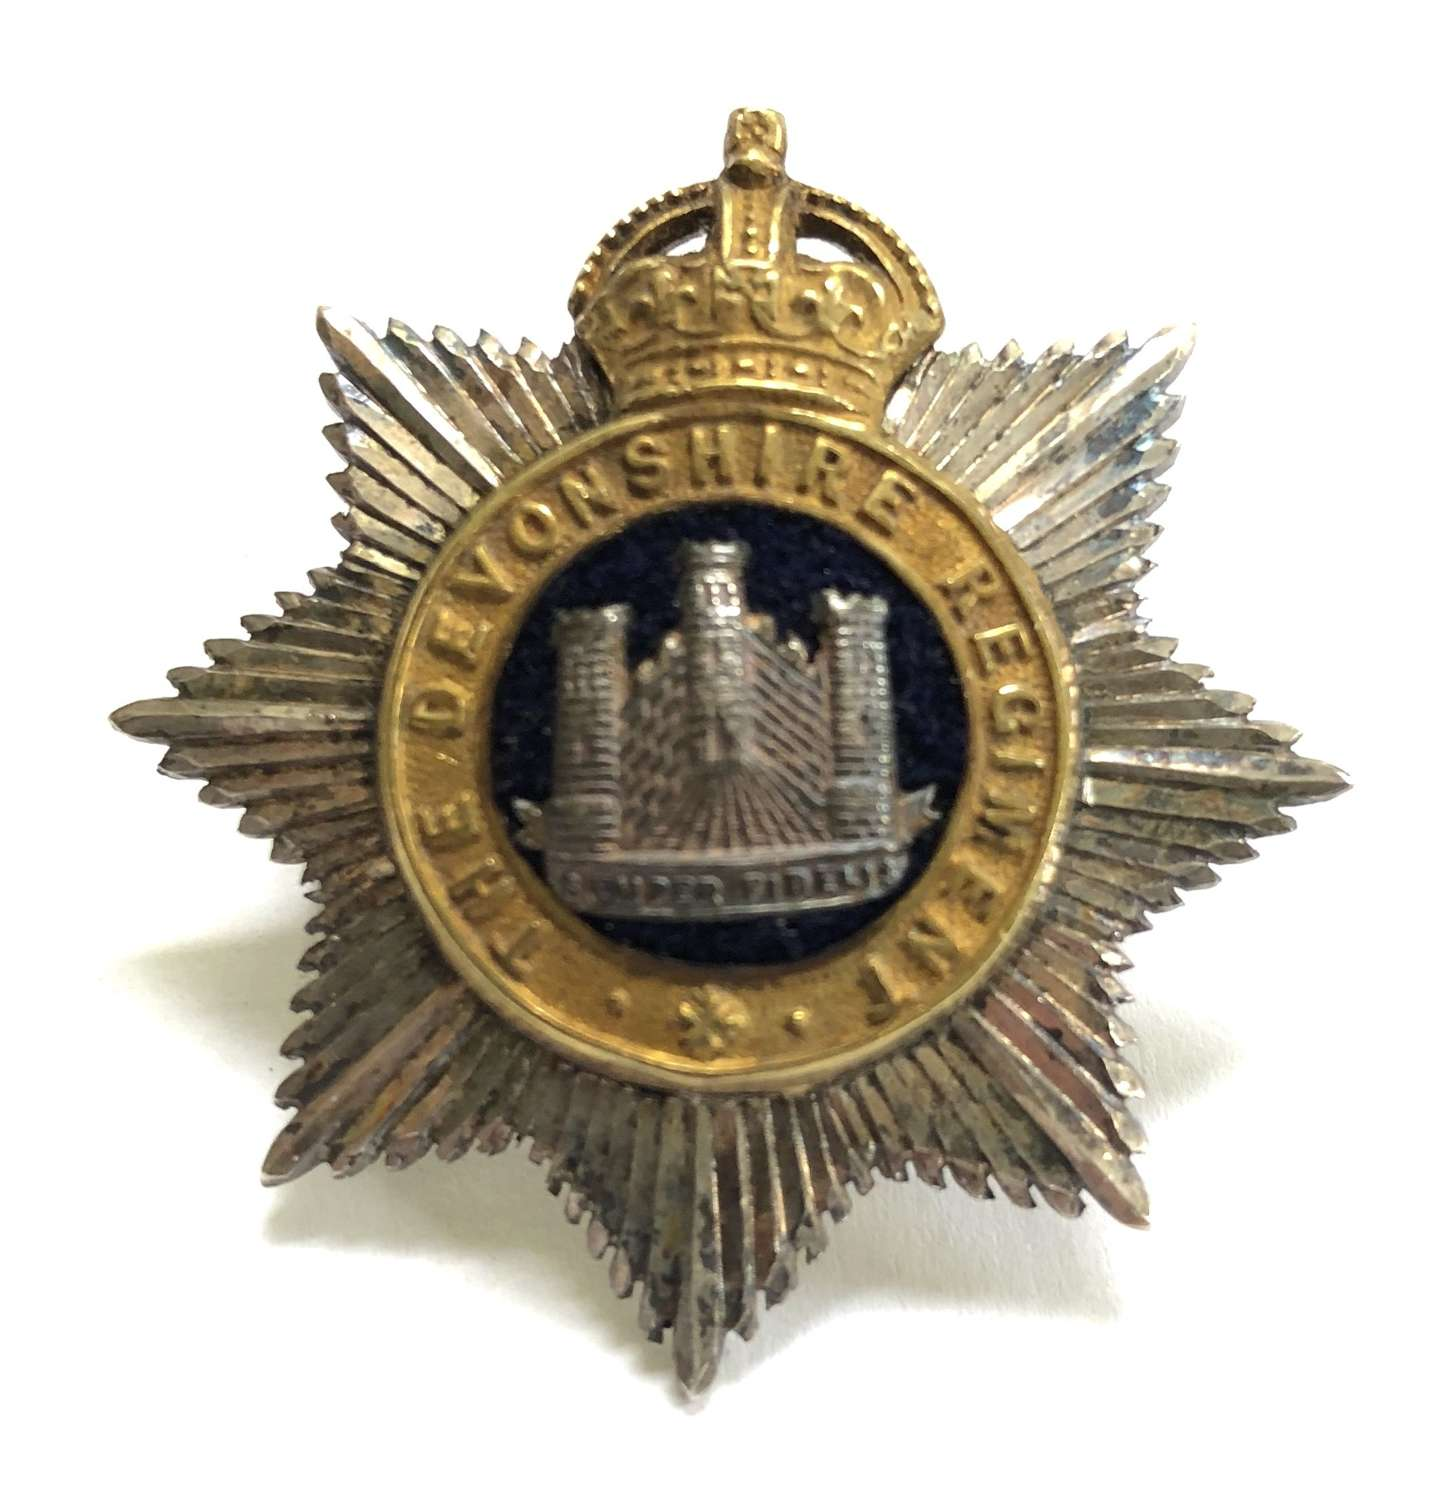 Devonshire Regiment silver Officer's cap badge by Gaunt, London